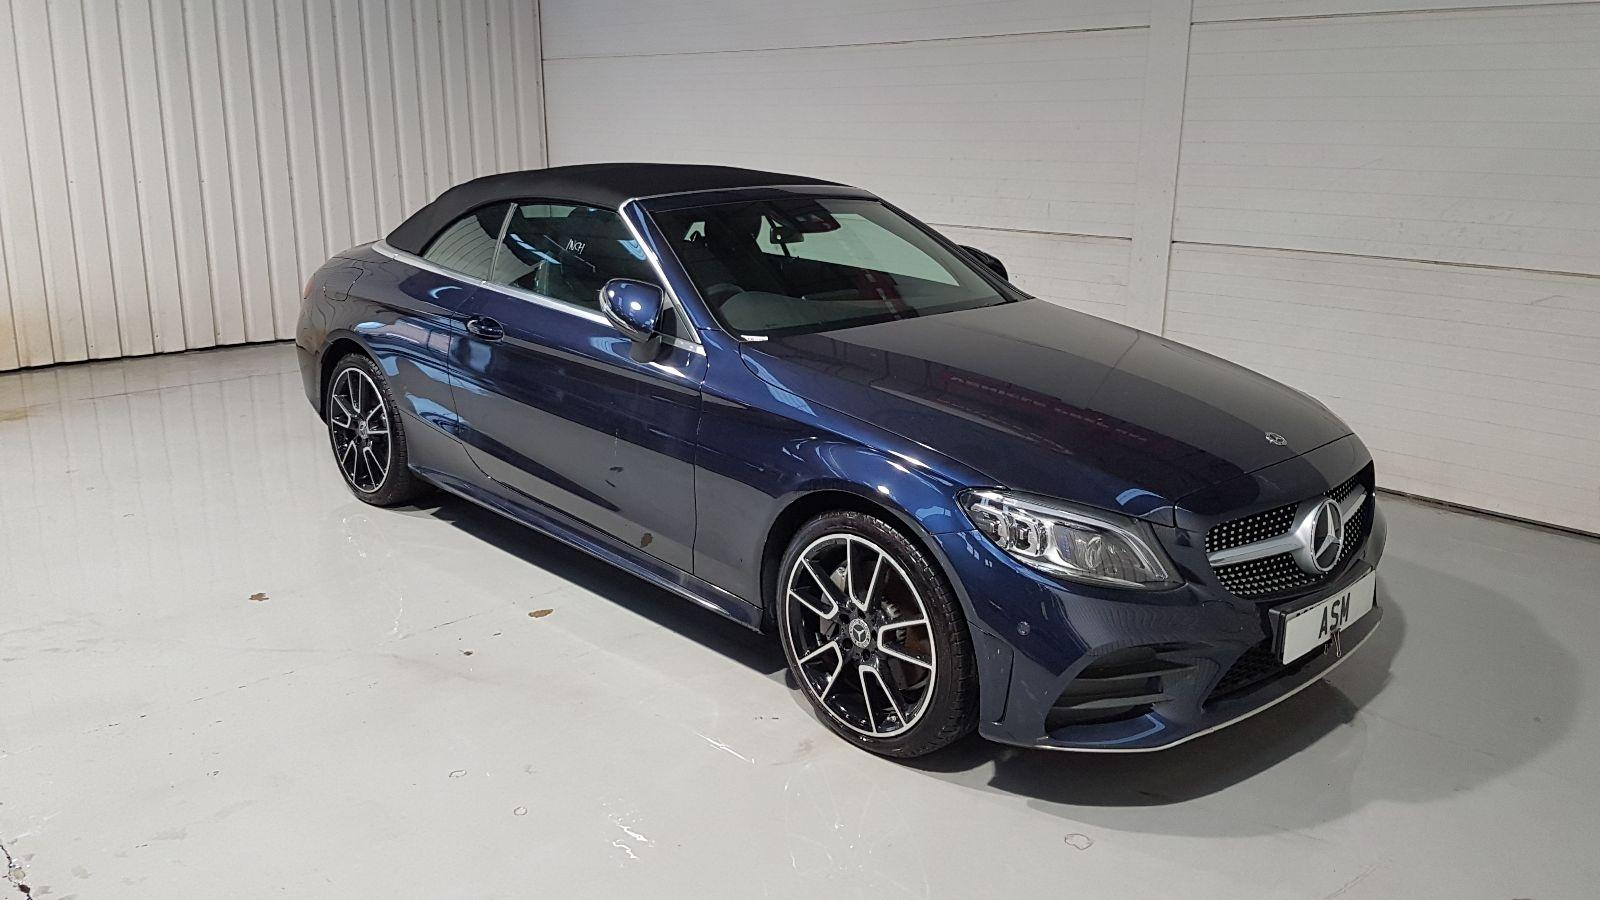 Image for a Mercedes C Class 2019 2 Door Bodystyle Convertable